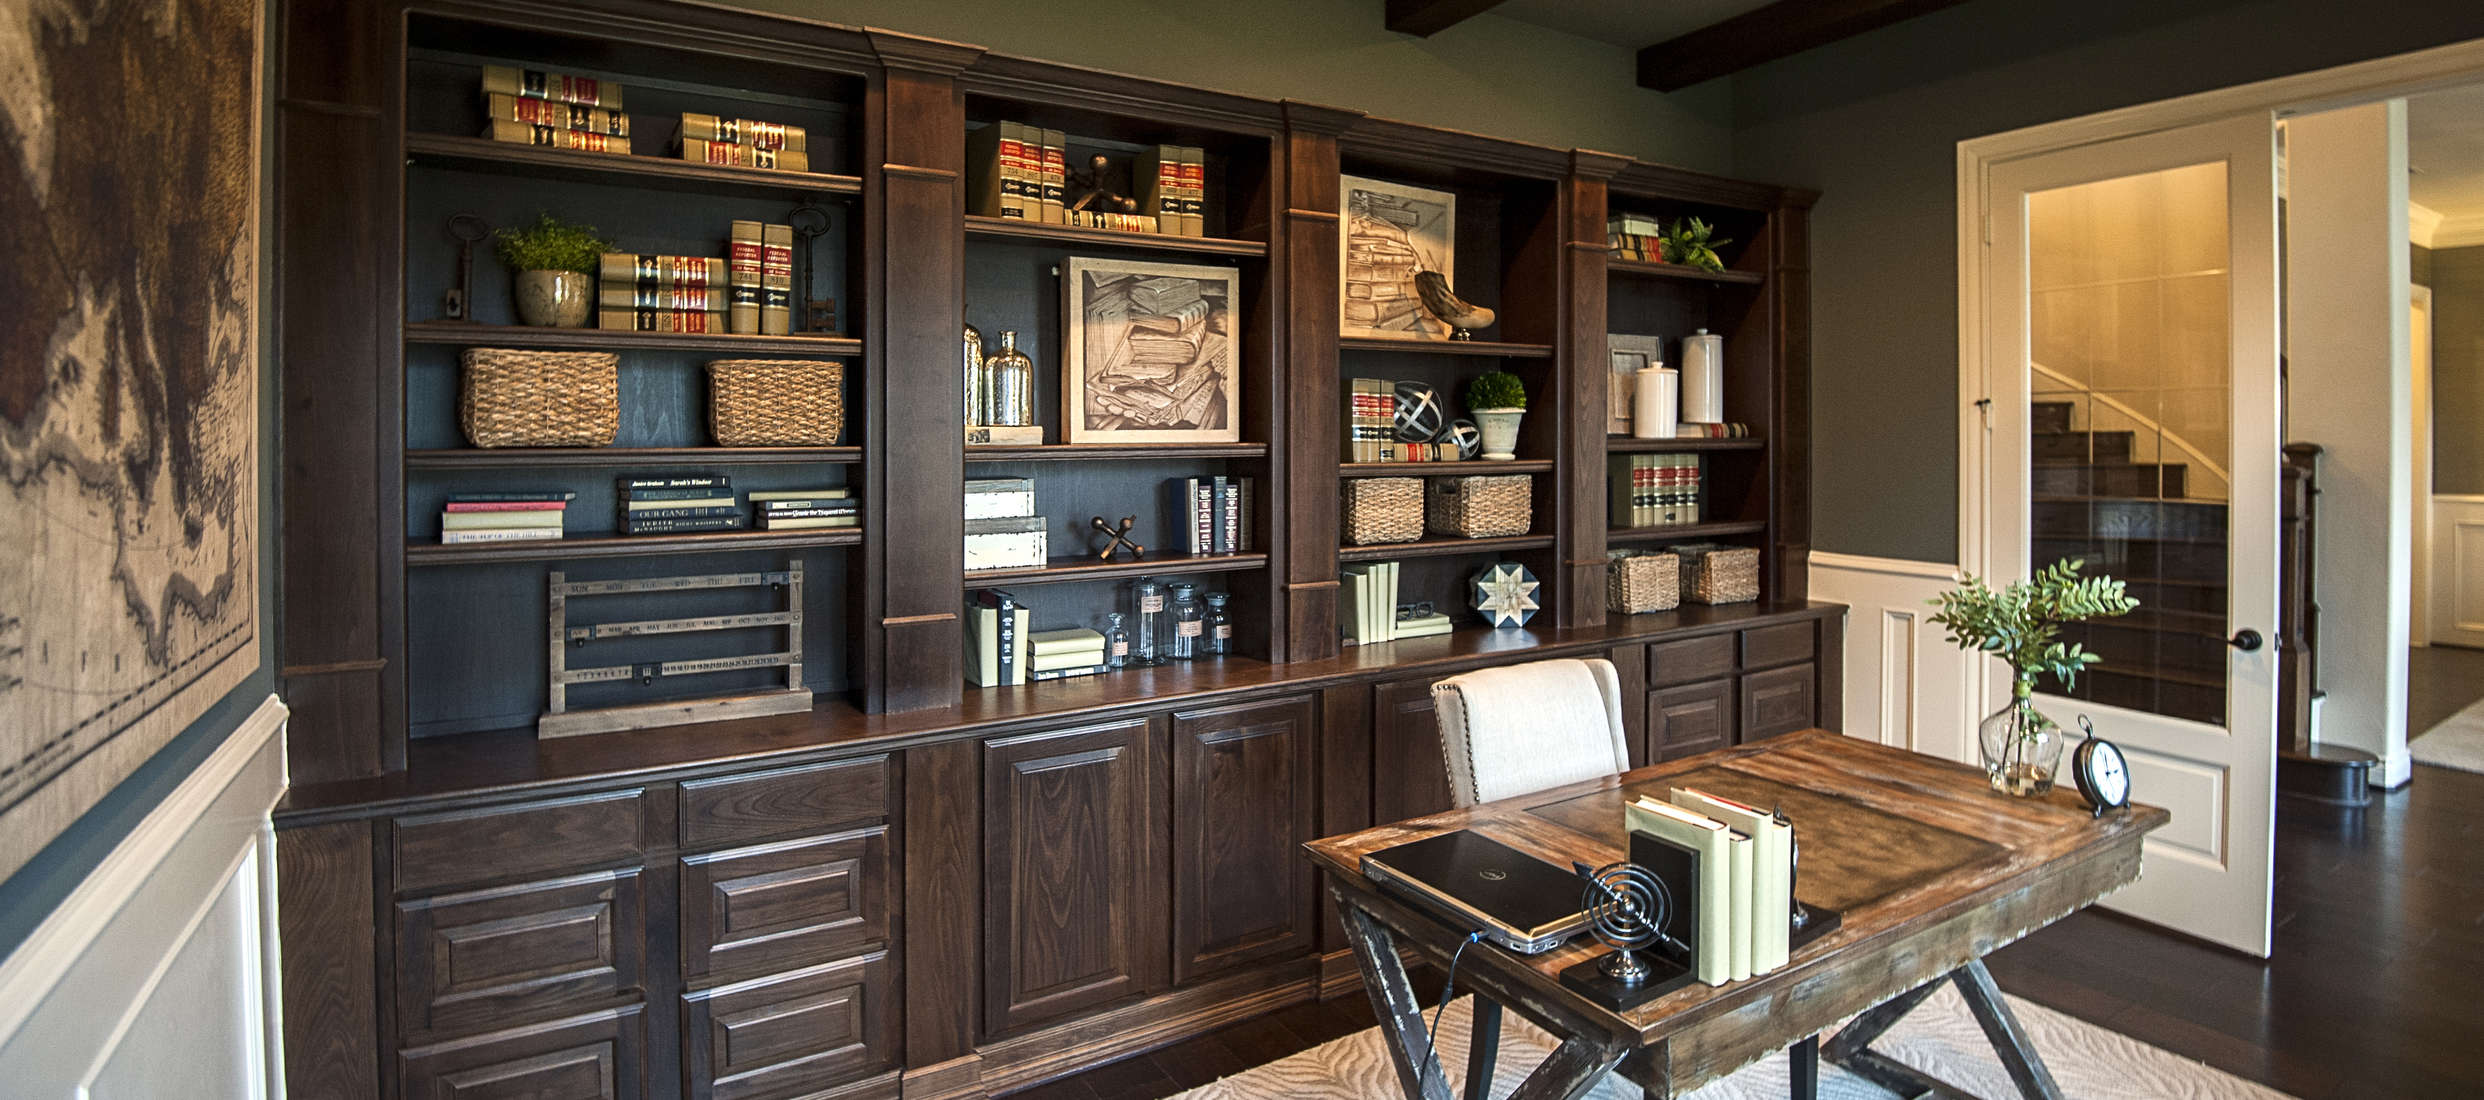 Charmant J Kraft, Inc. | Custom Cabinets By Houston Cabinet Company, J Kraft, Inc.